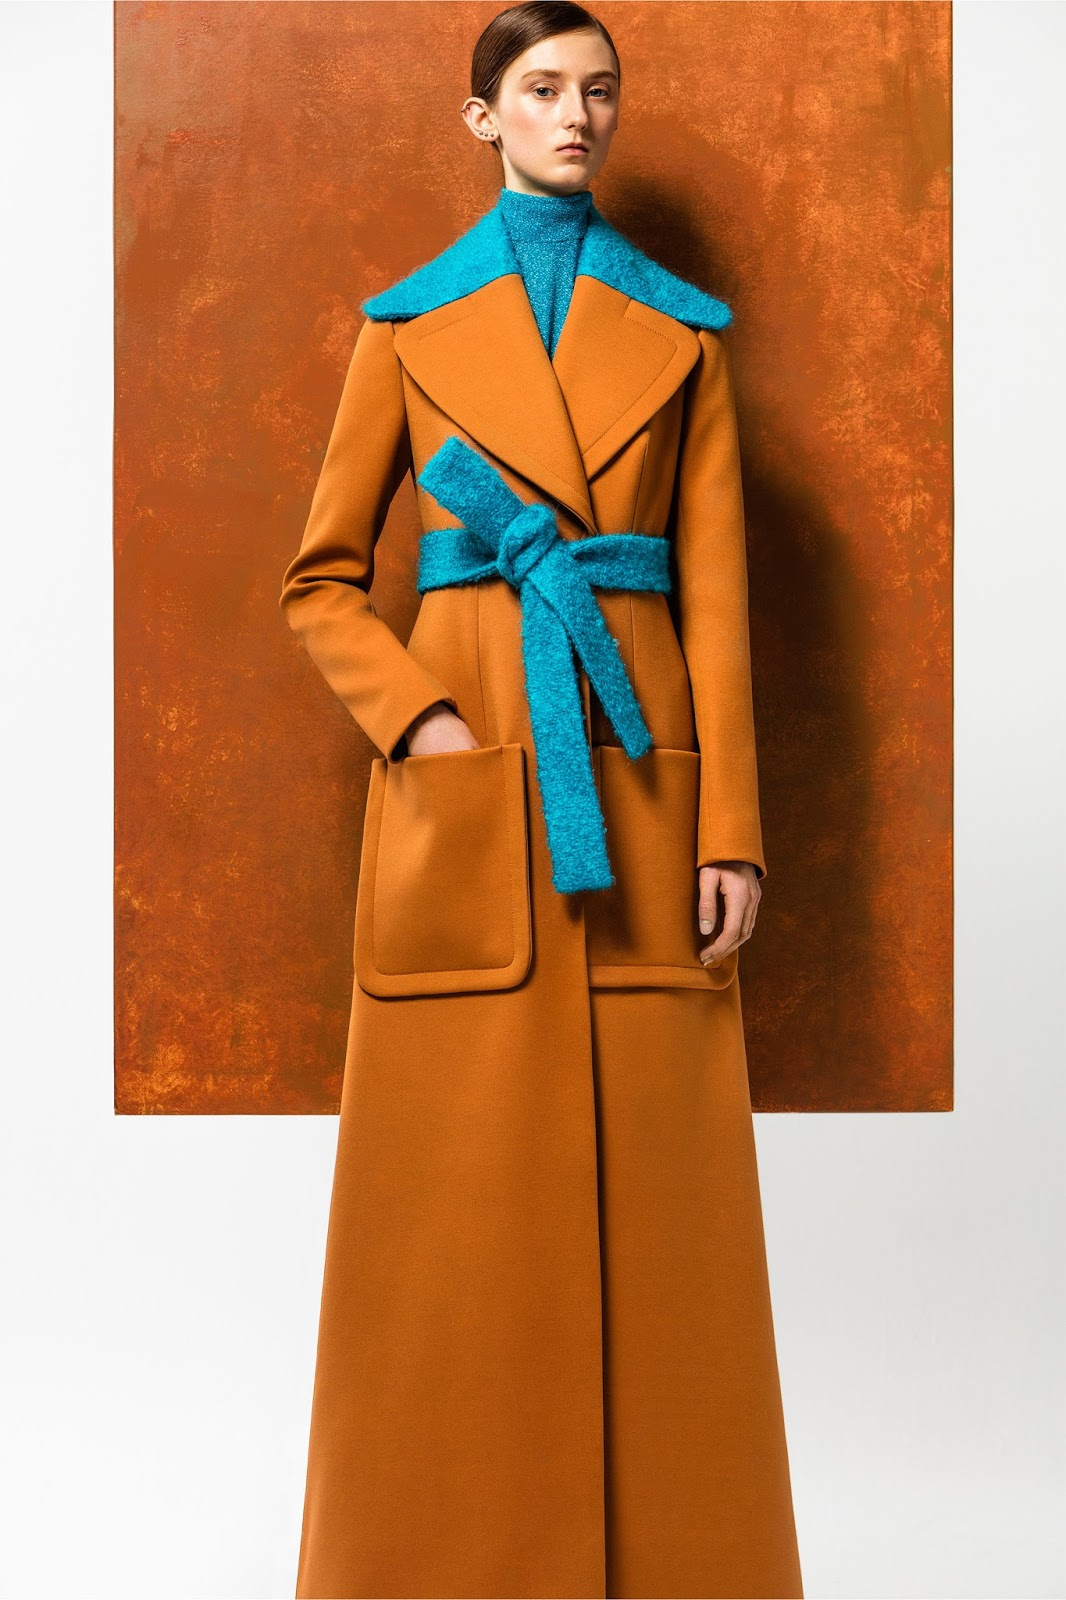 Delpozo Pre-Fall 2016 collection via www.fashionedbylove.co.uk